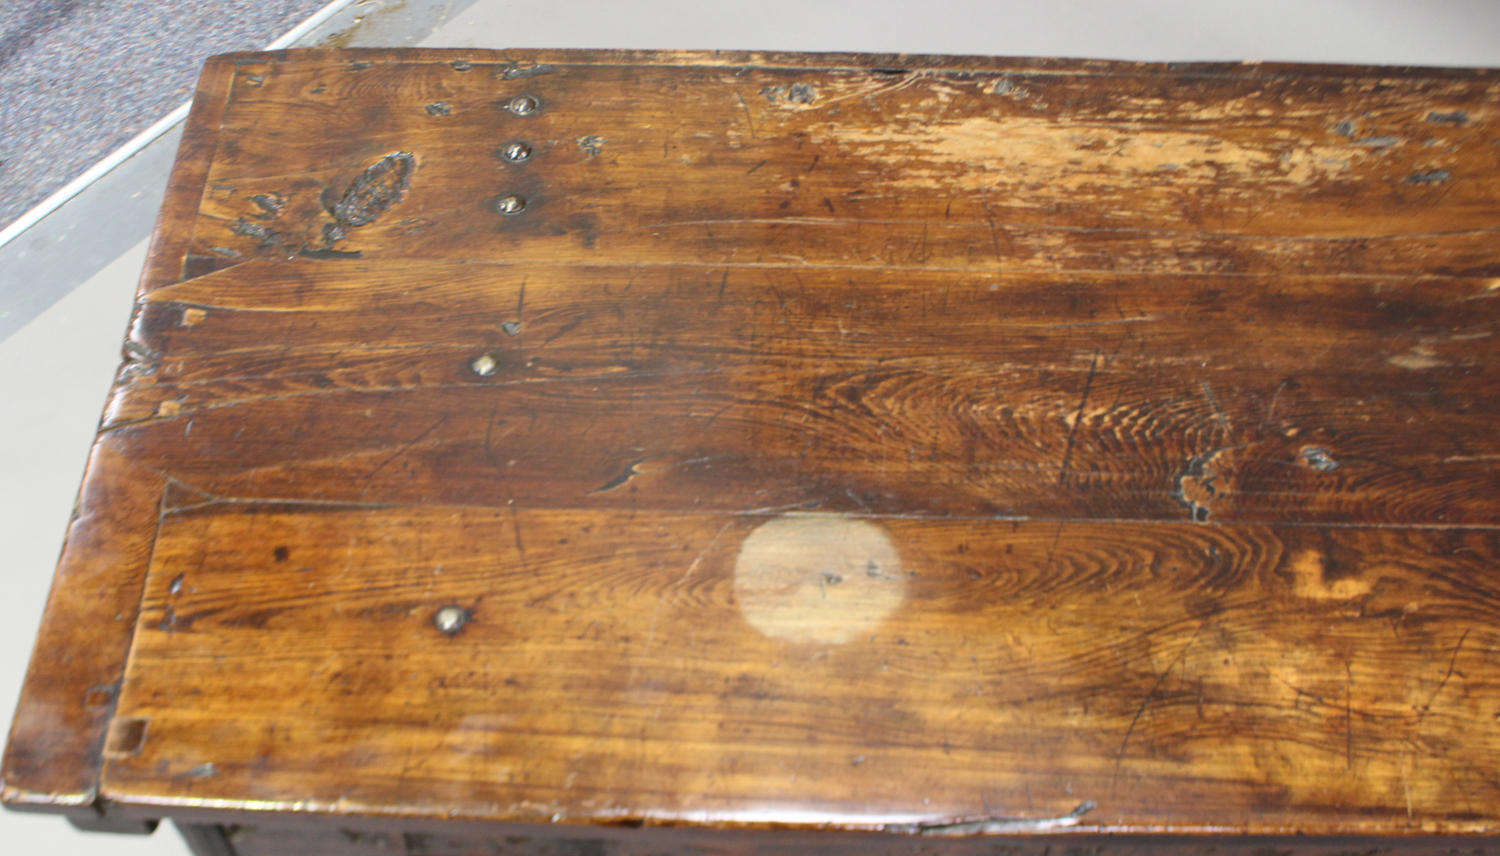 A large 17th century Italian cedar and walnut Adige chest, the lid hinged to reveal poker and pen - Image 13 of 13